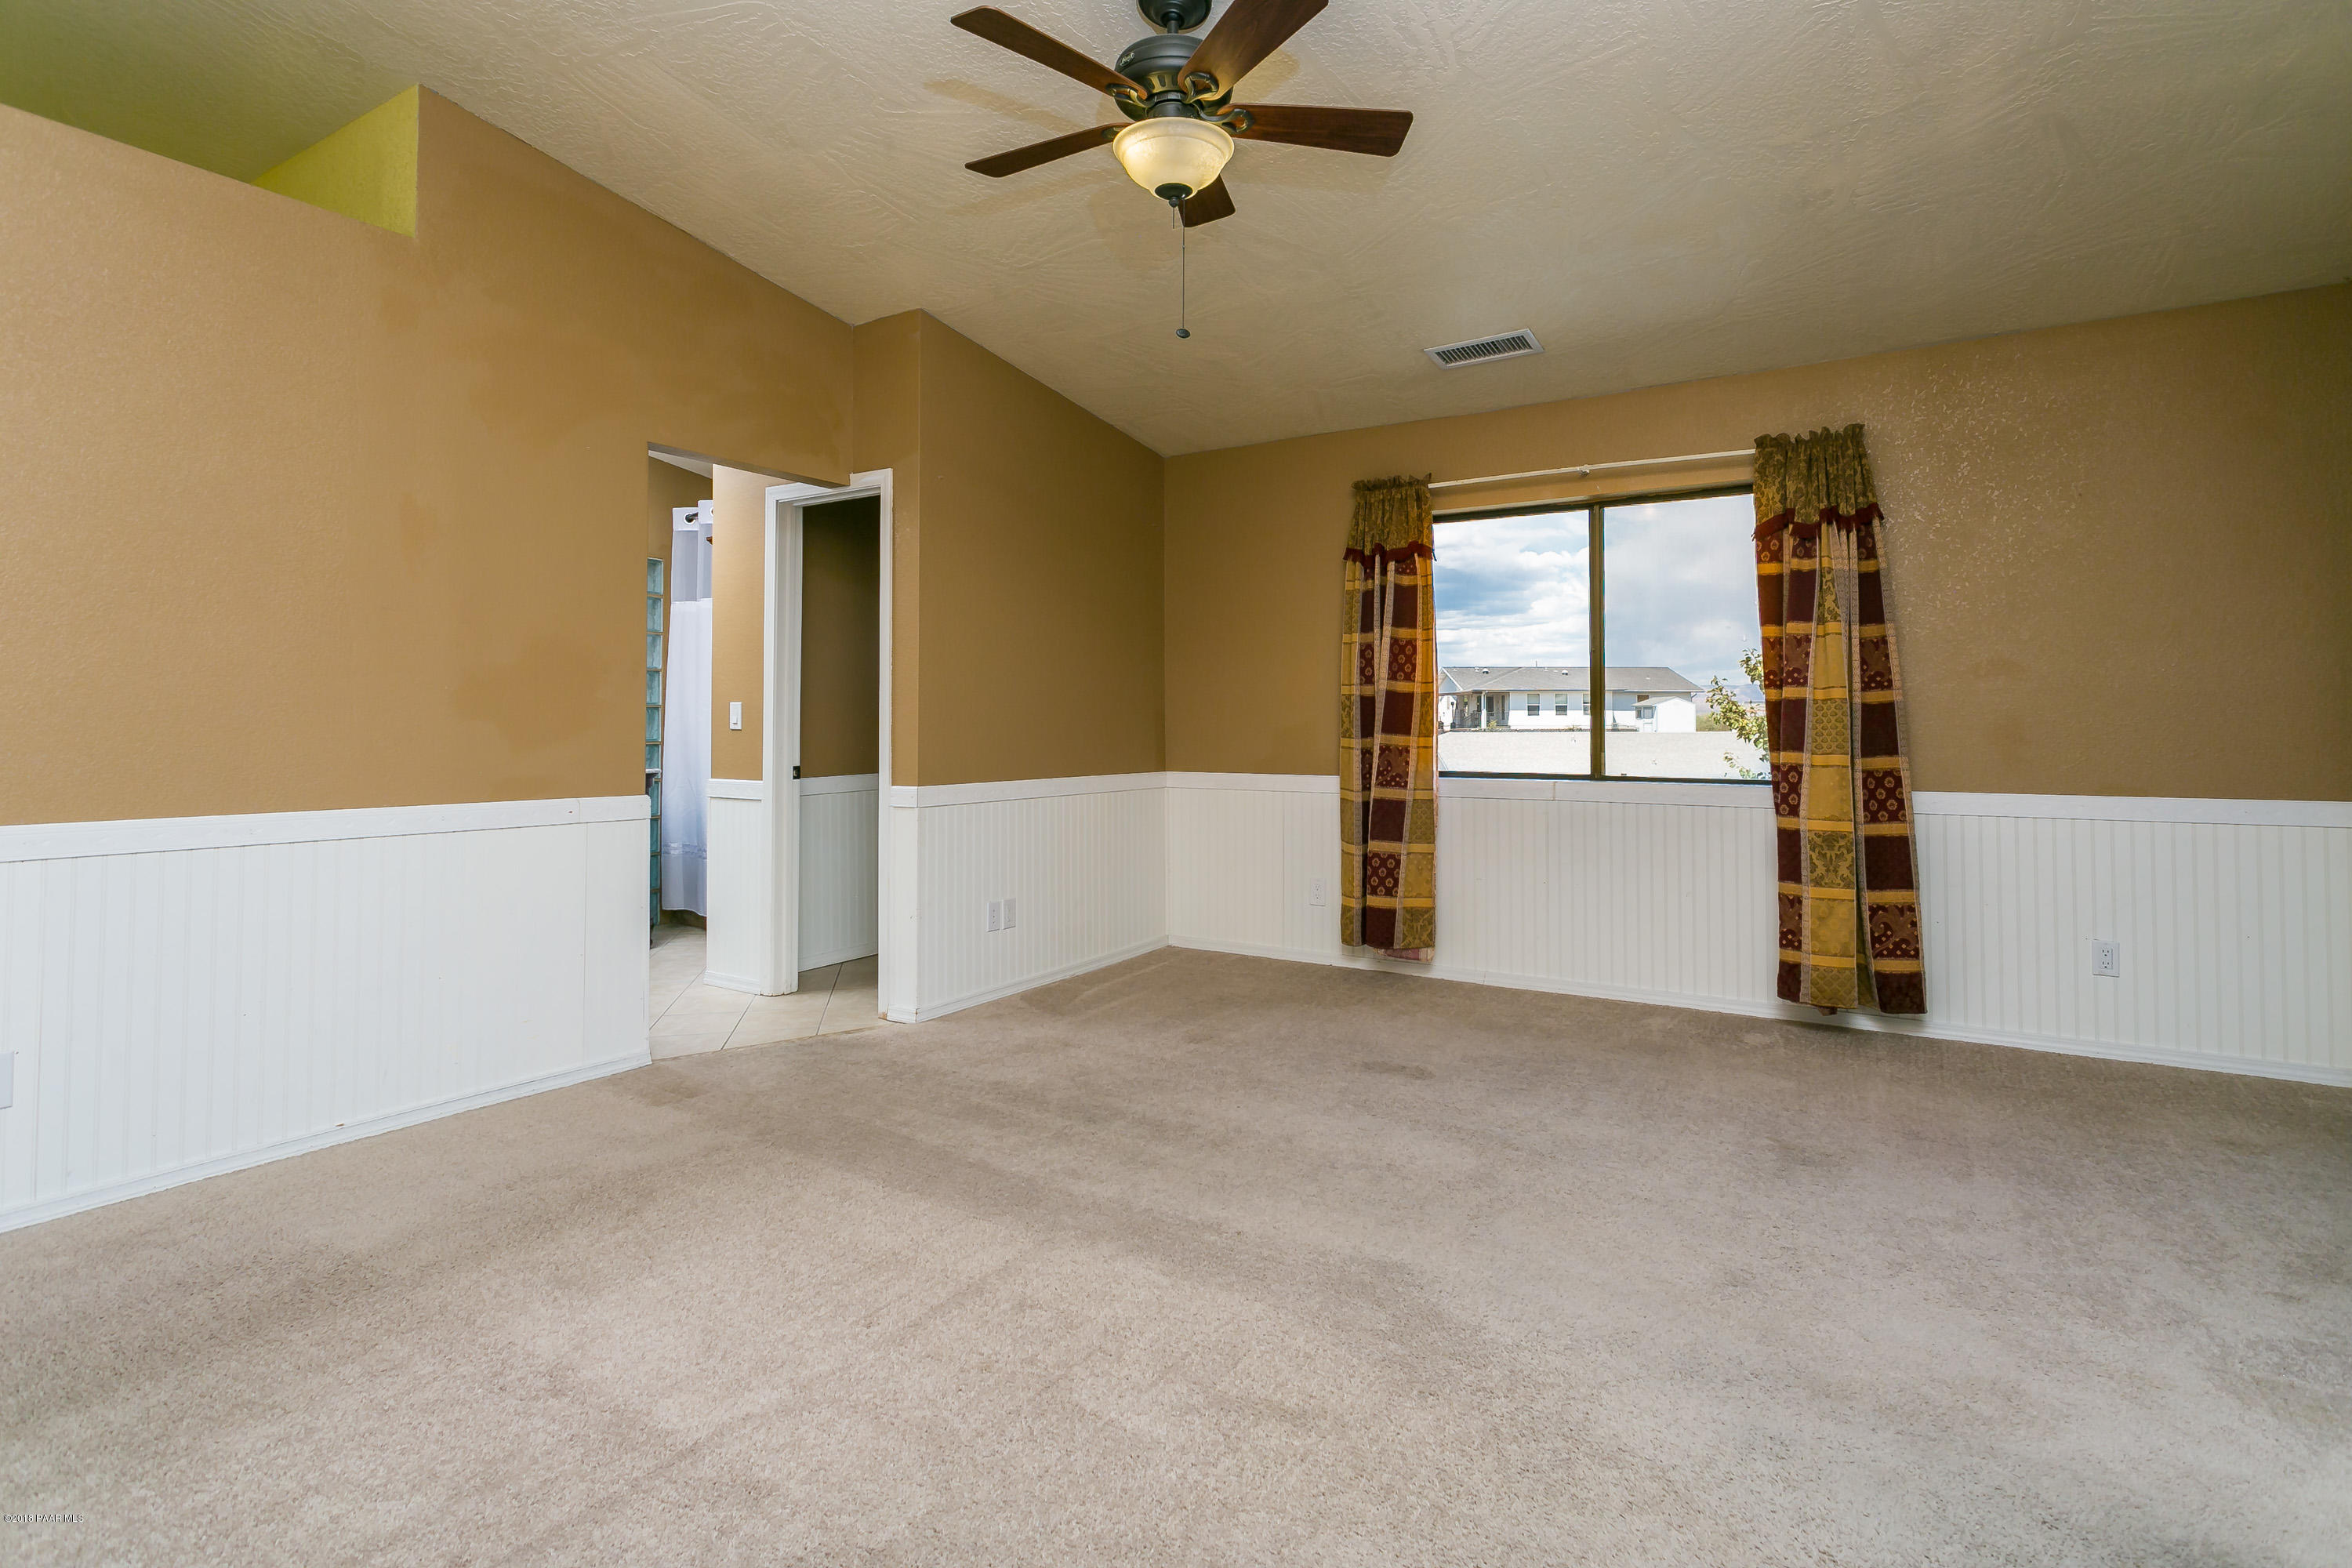 940 Buena Vista Drive Unit 7 Cottonwood, AZ 86326 - MLS #: 1015153